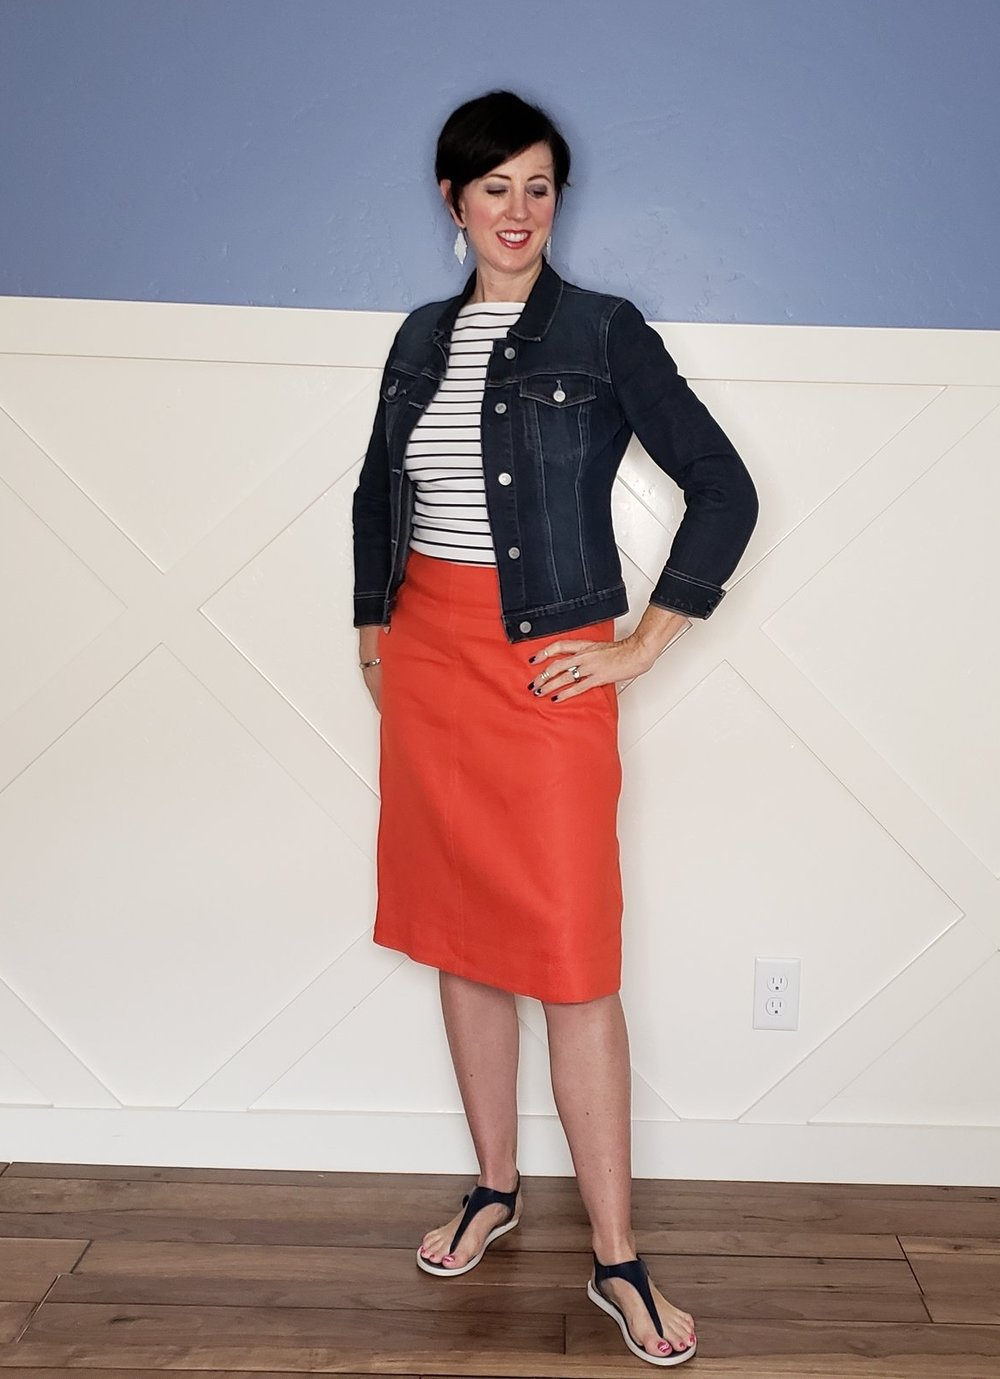 If you want something other than shorts for the spring and summer, skirts and dresses to the rescue! They are comfortable, stylish, easy, and make you look immediately put together.